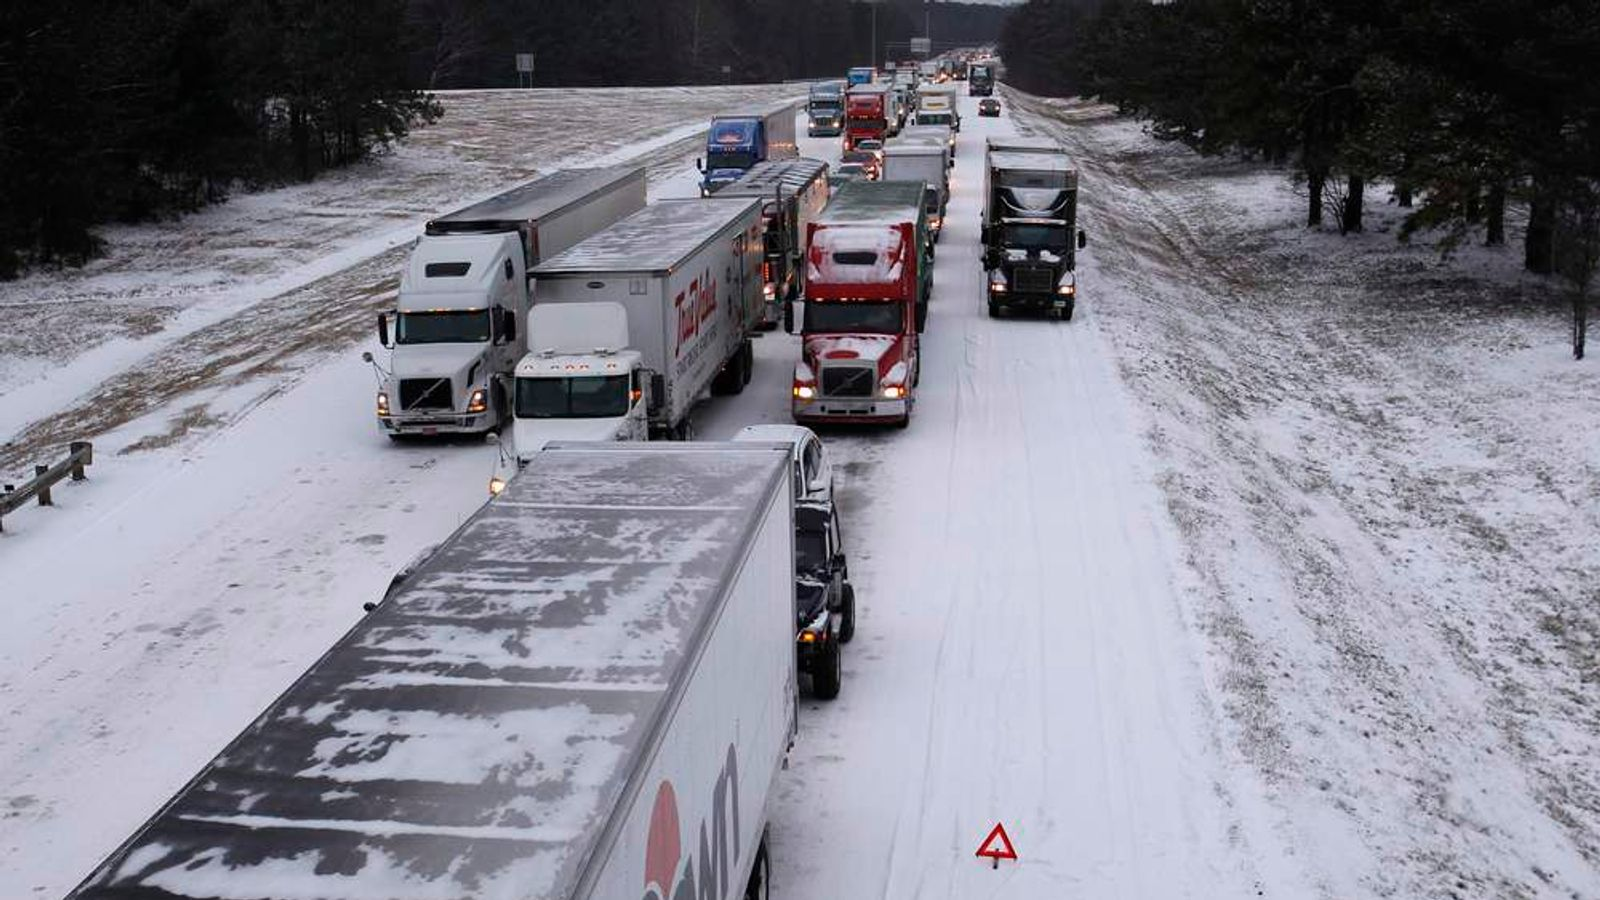 Cars and trucks are gridlocked on I-75 interstate highway after a rare snowstorm in Kennesaw